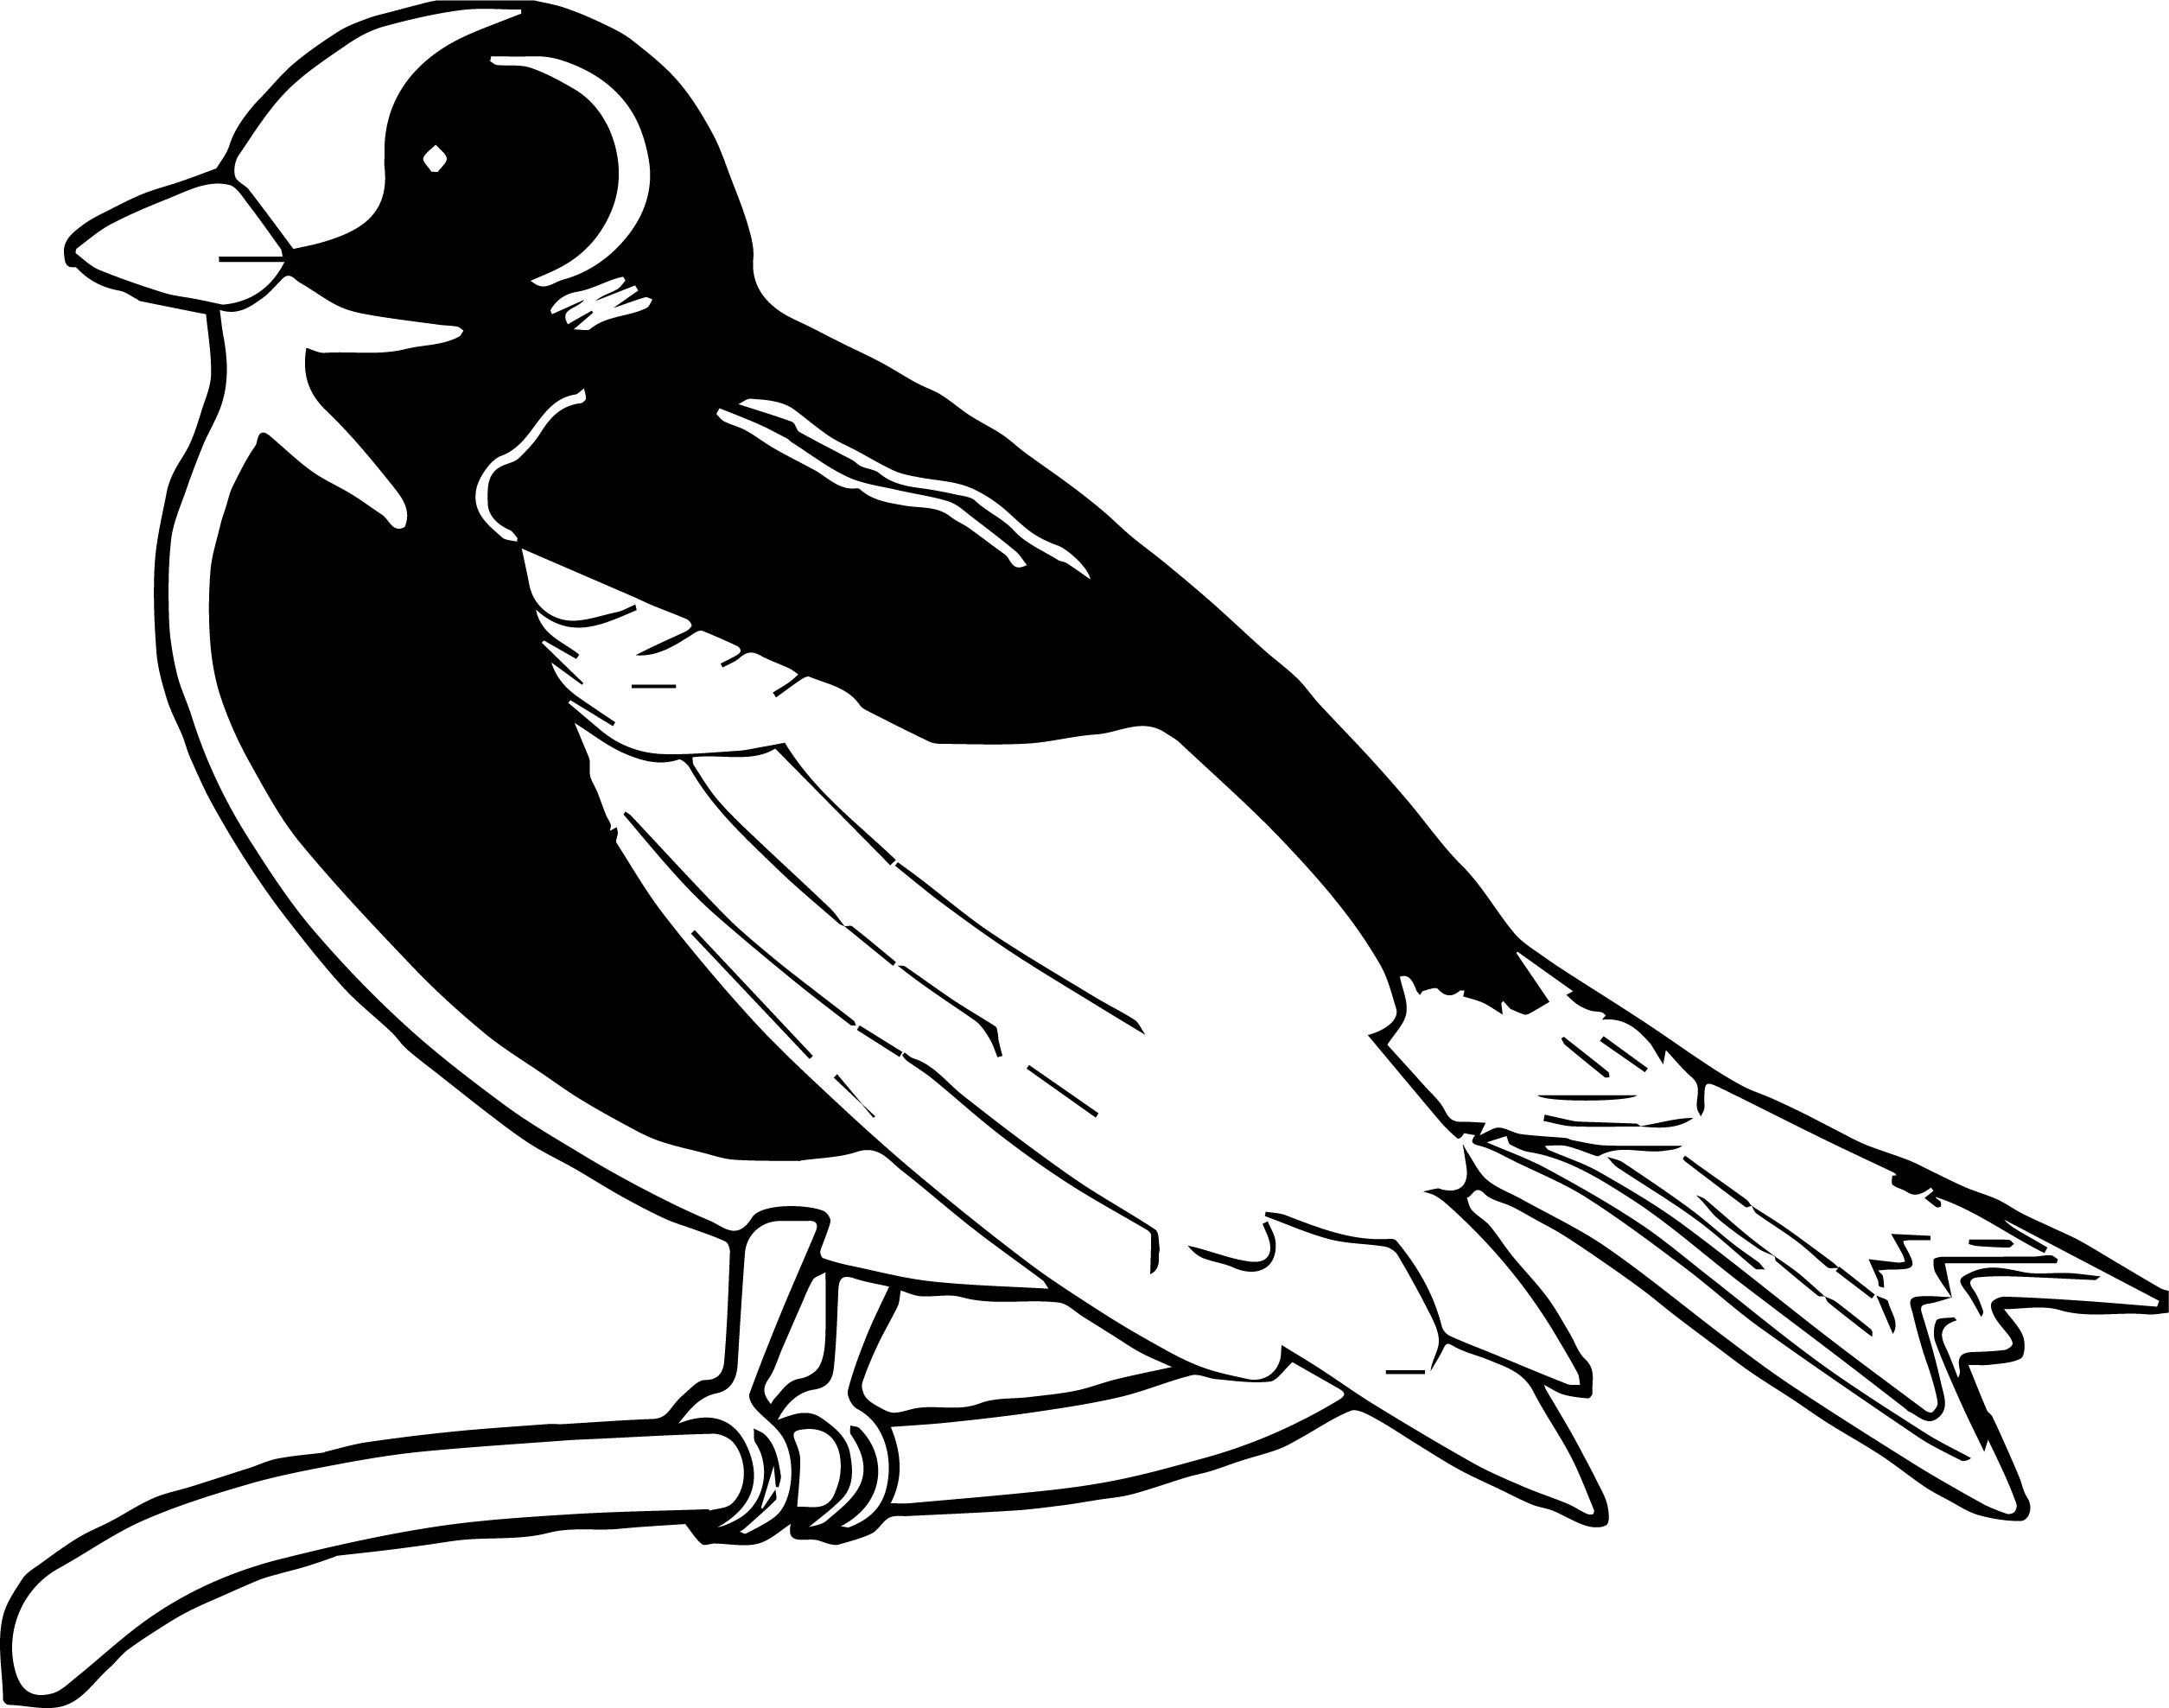 Can Bird Coloring Page